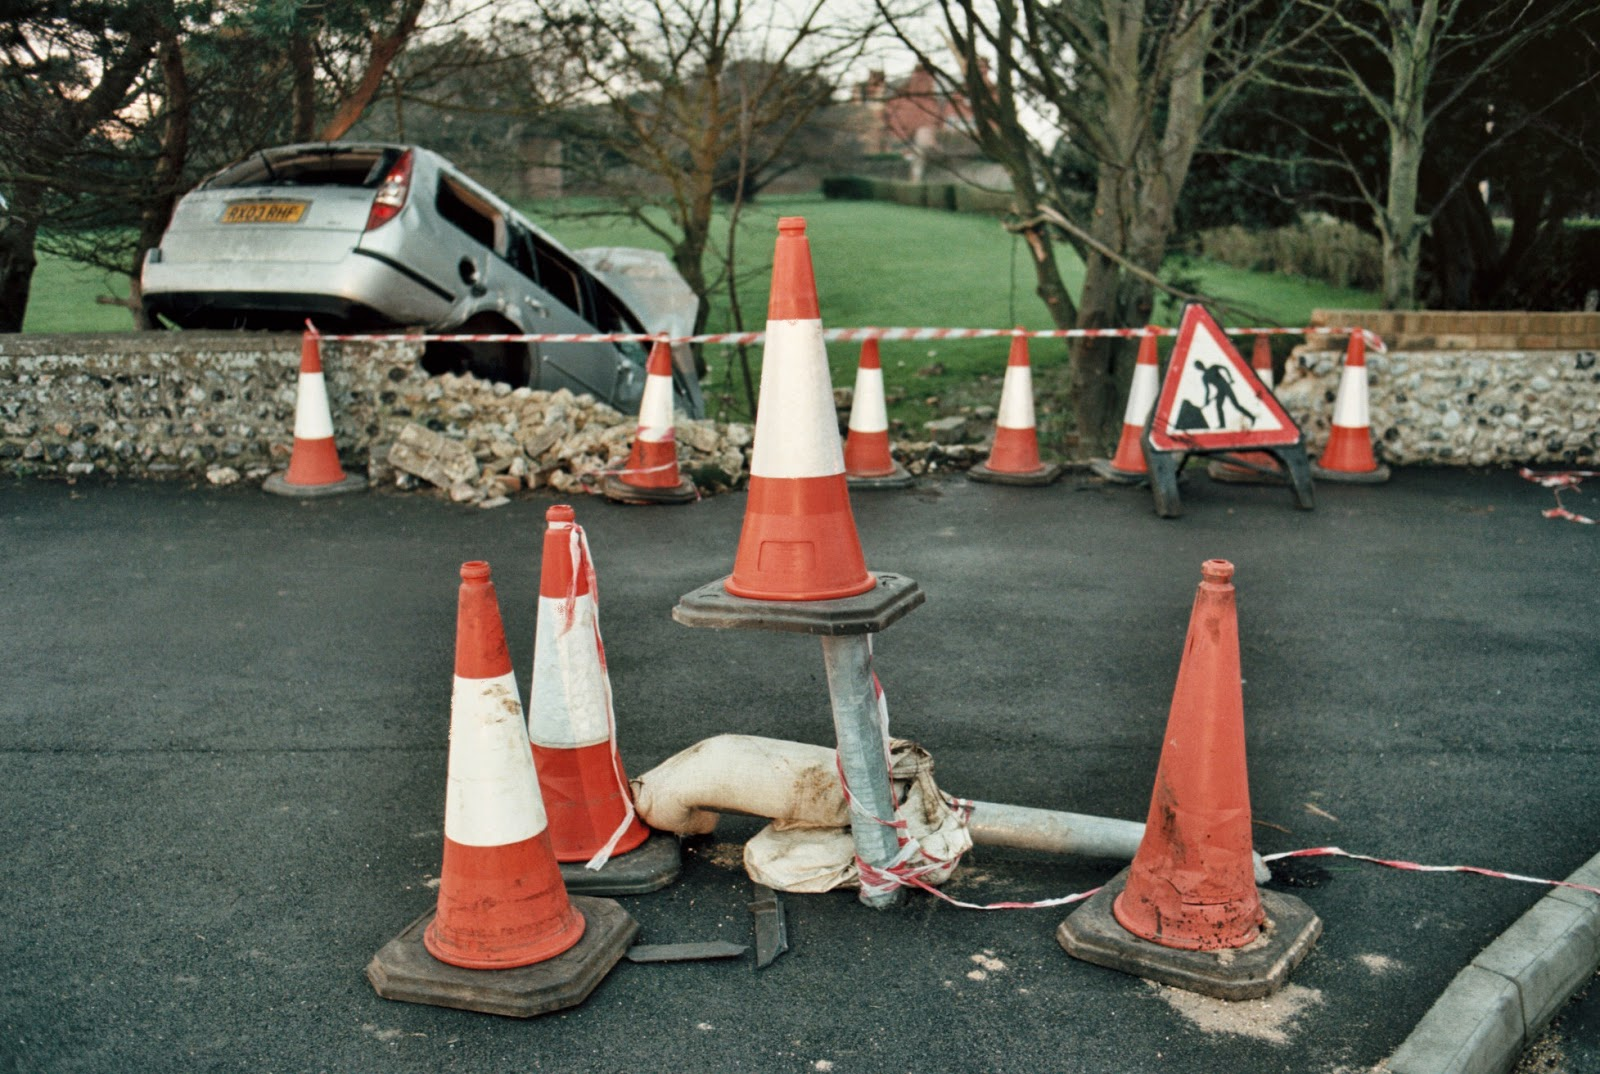 ROAD SAFETY, JOY RIDING, HIGHWAY CODE, ROAD TRAFFIC ACCIDENT, MEN AT WORK, TRAFFIC CONES, INCIDENT TAPE, DRUNKEN DRIVING, STONE WALLS, VEHICLE RECOVERY, EMERGENCY SERVICES,  RAMSGATE, KENT  © VAC 100 DAYS 4 MILLION CONVERSATIONS